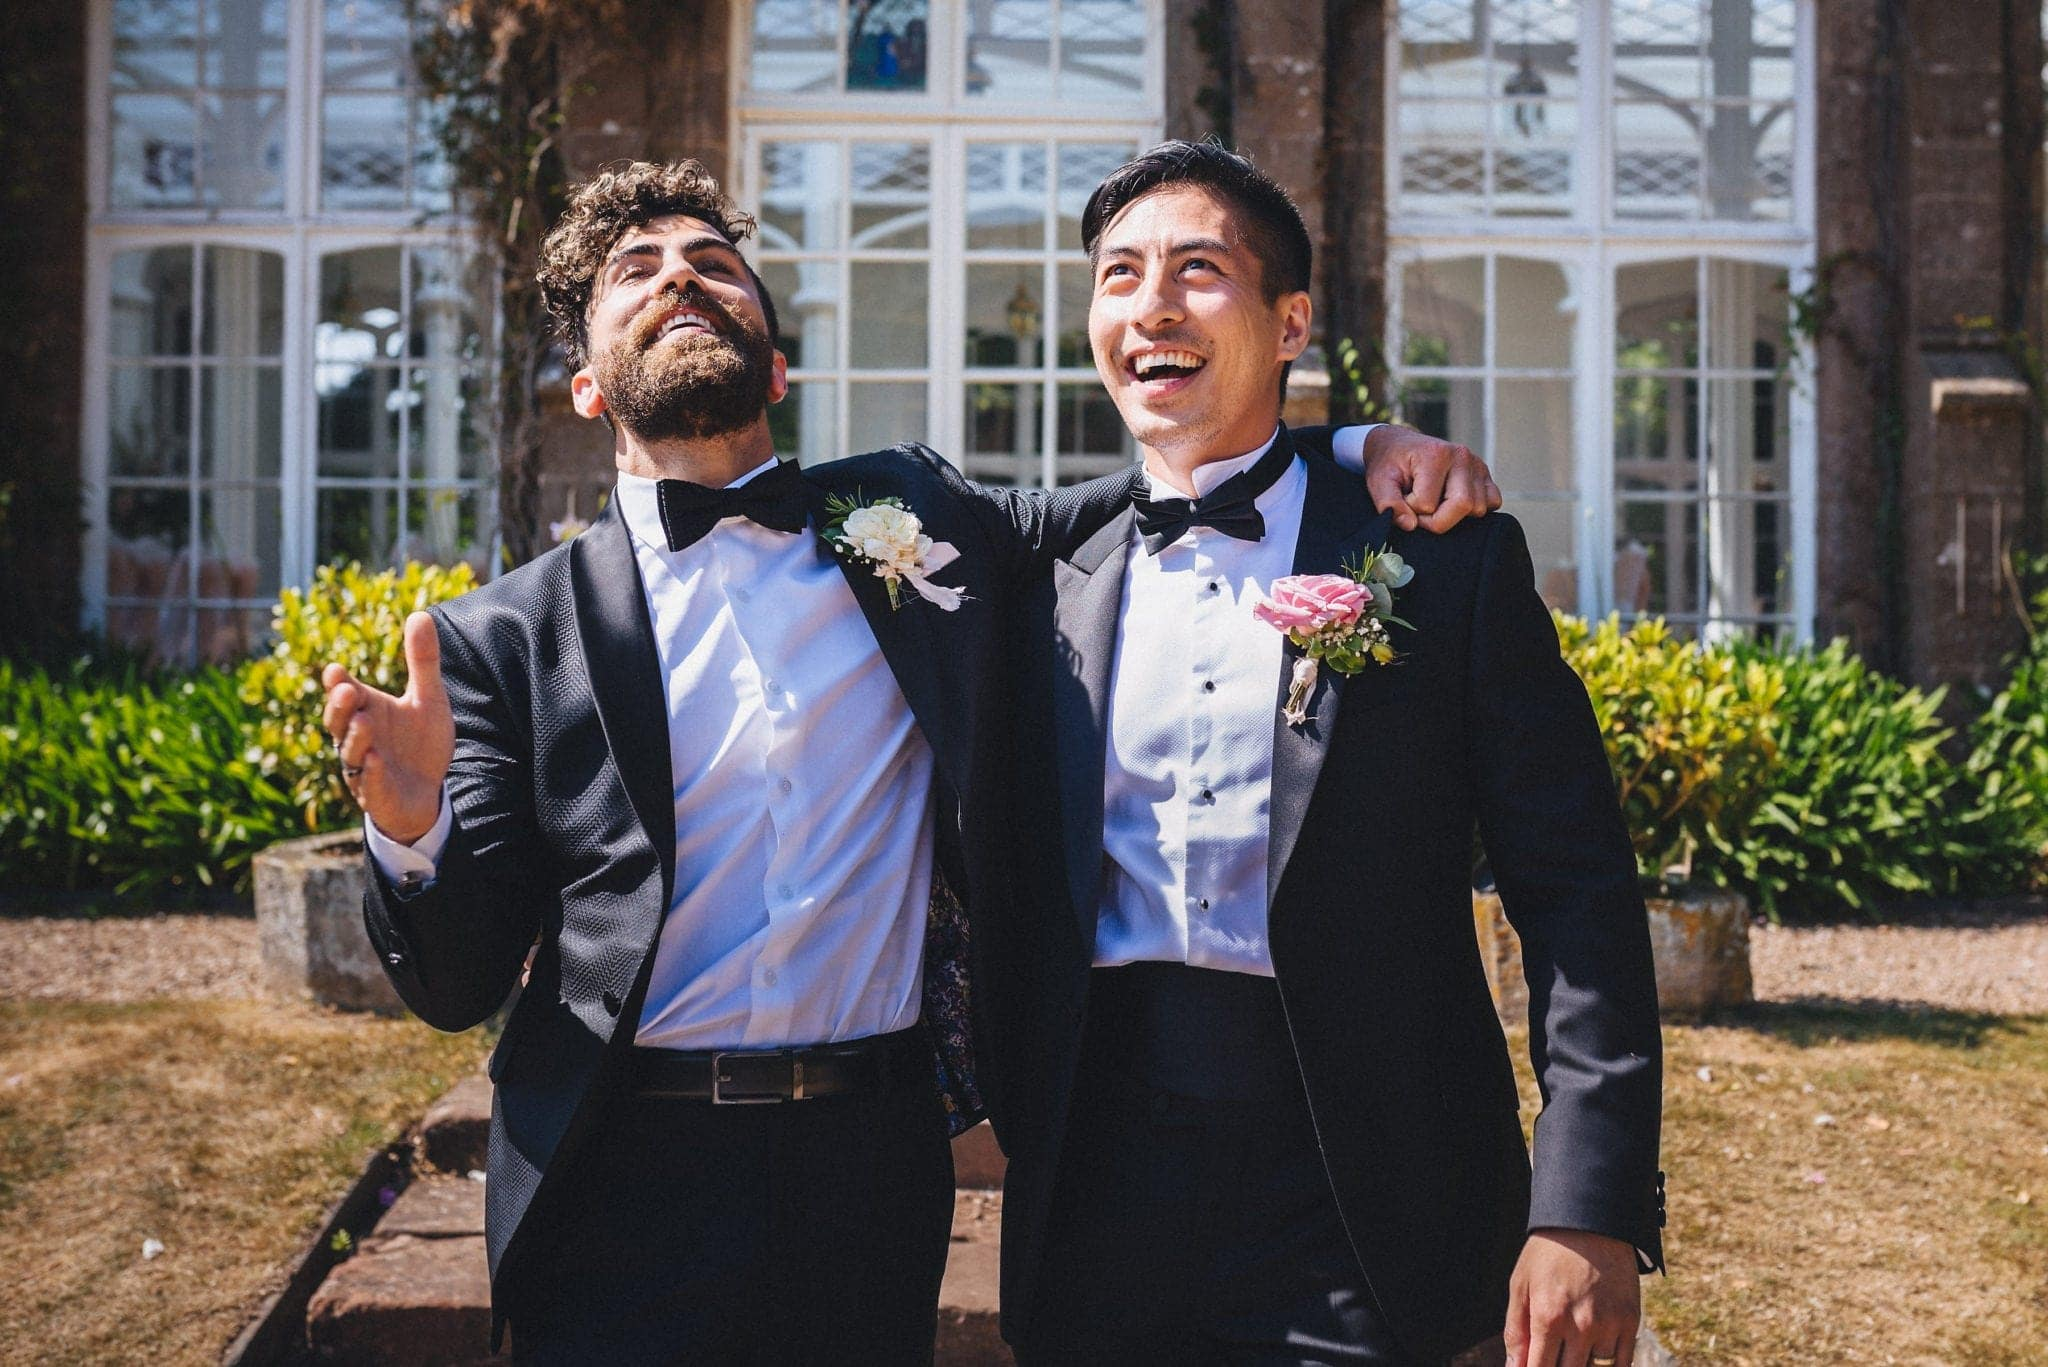 Groom and his best man goofing around